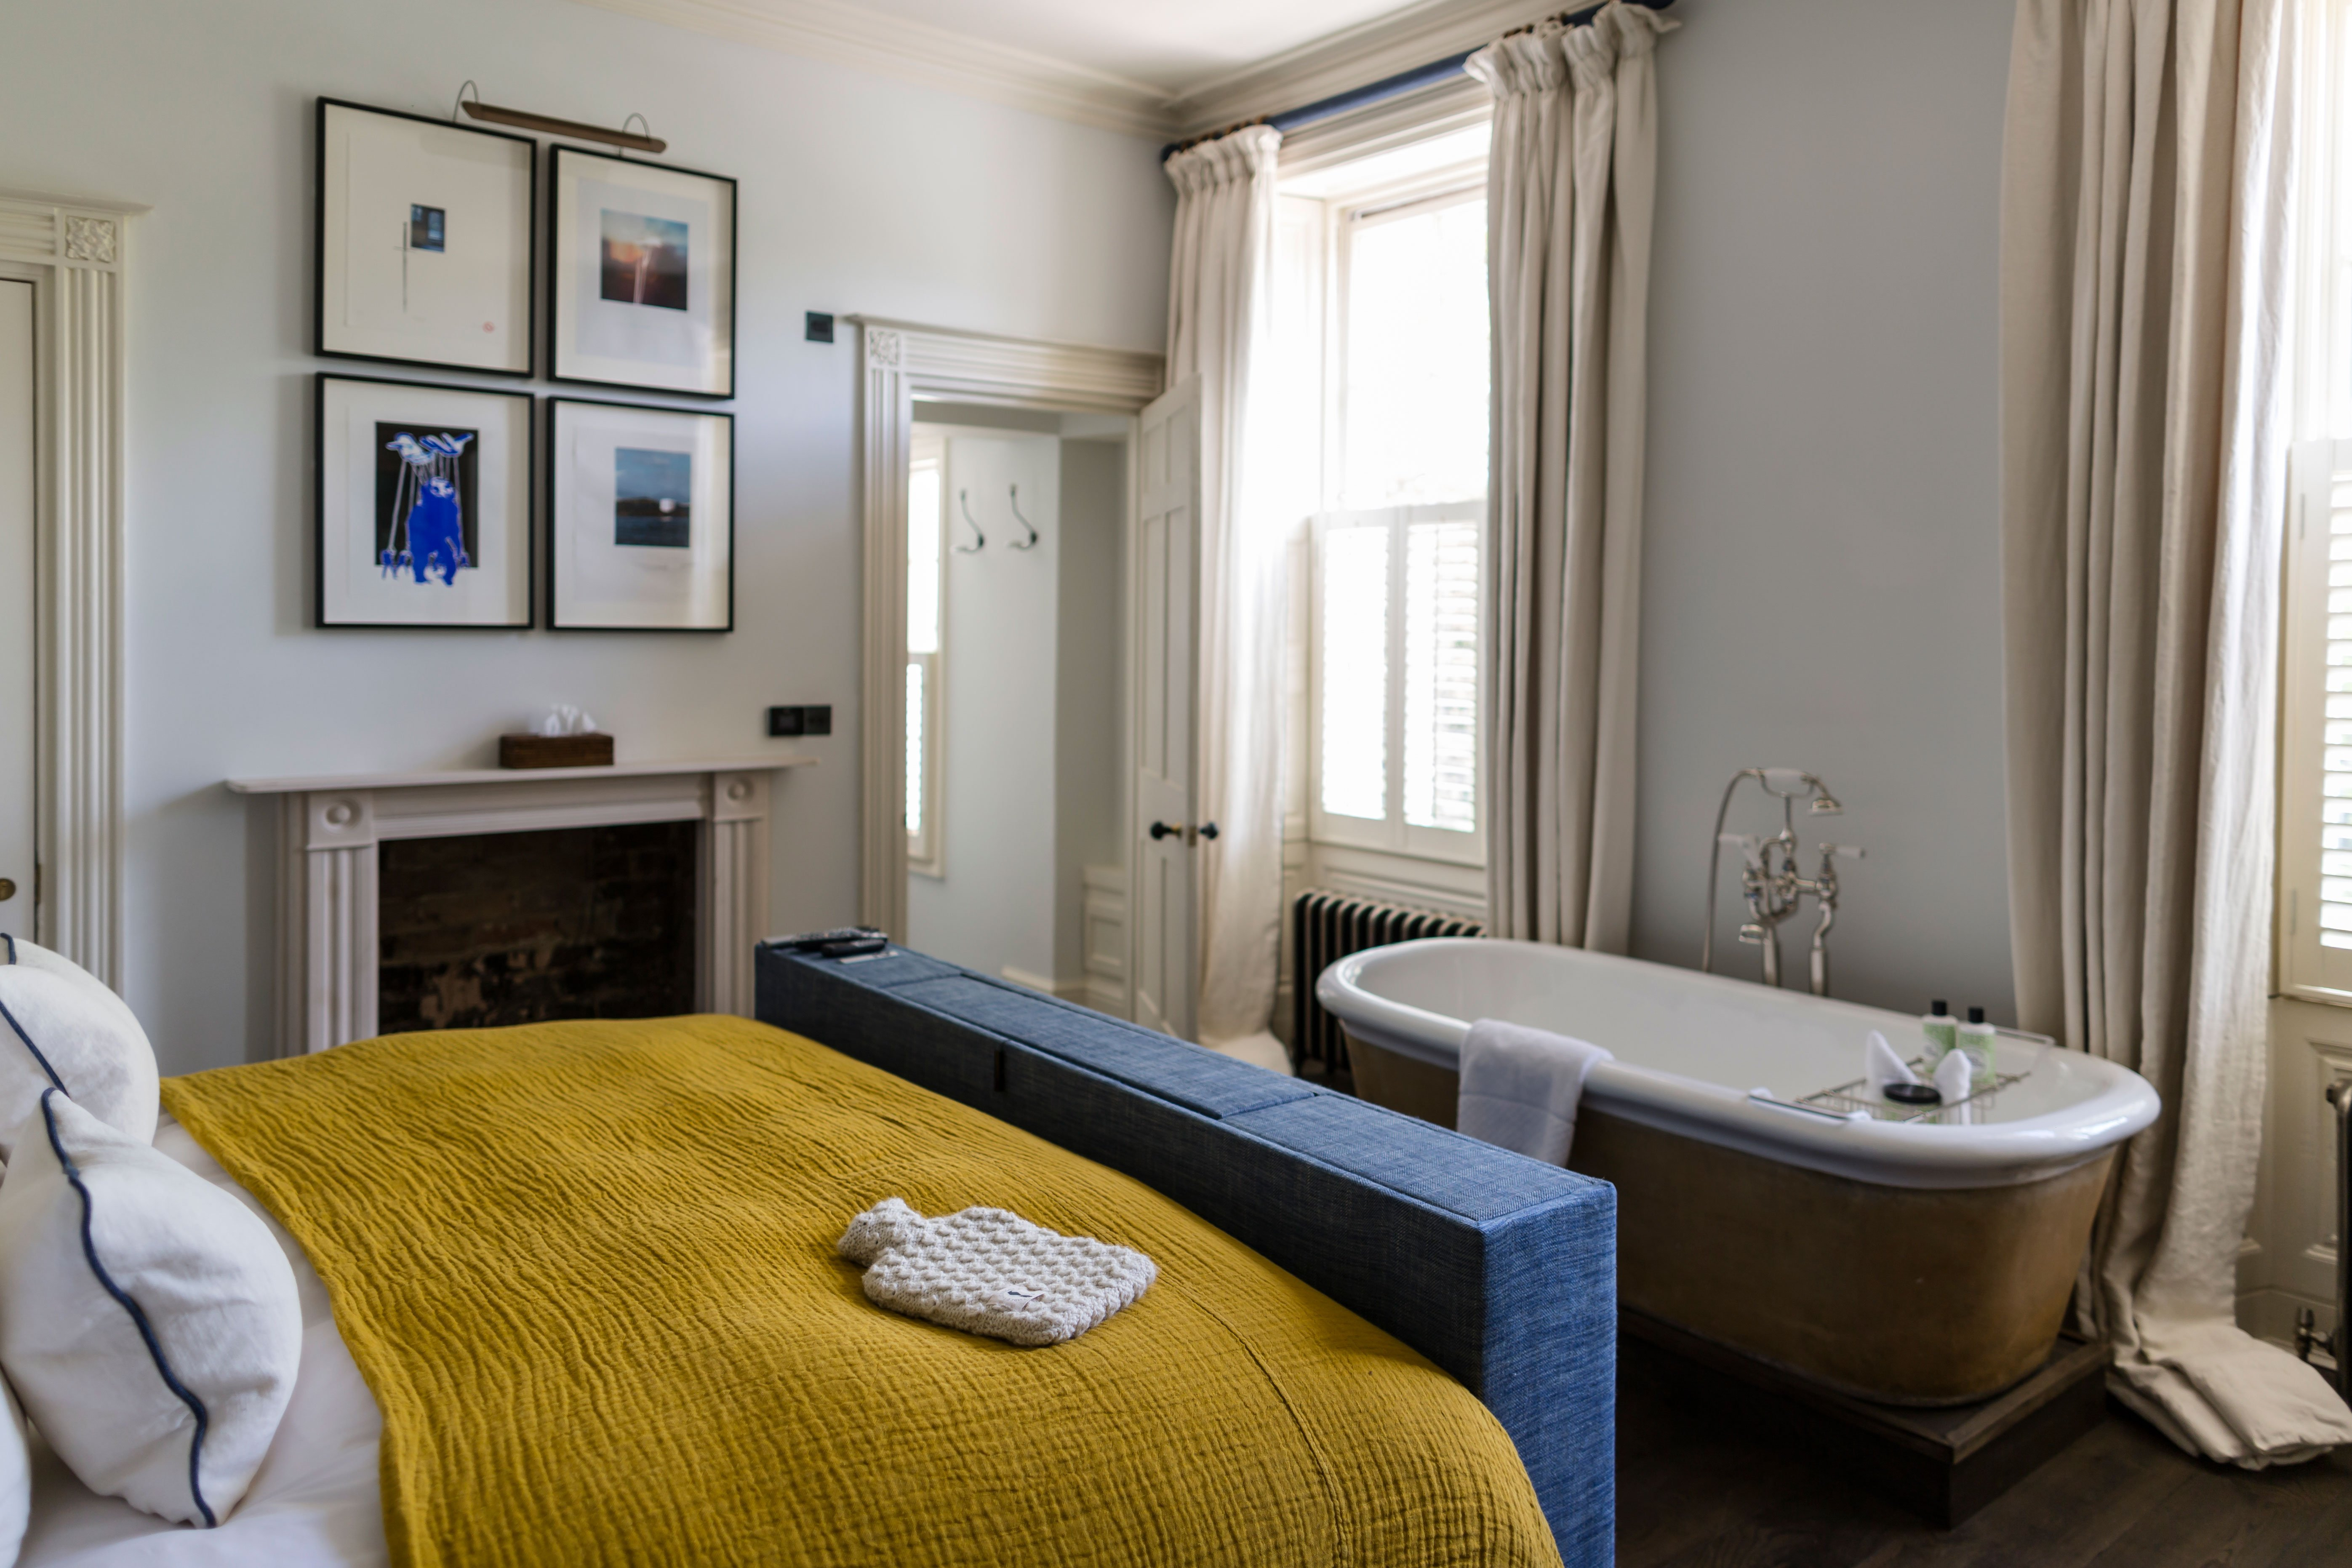 cheltenham-townhouse-38_the_park-yellow-bedroom-roll-top-bath